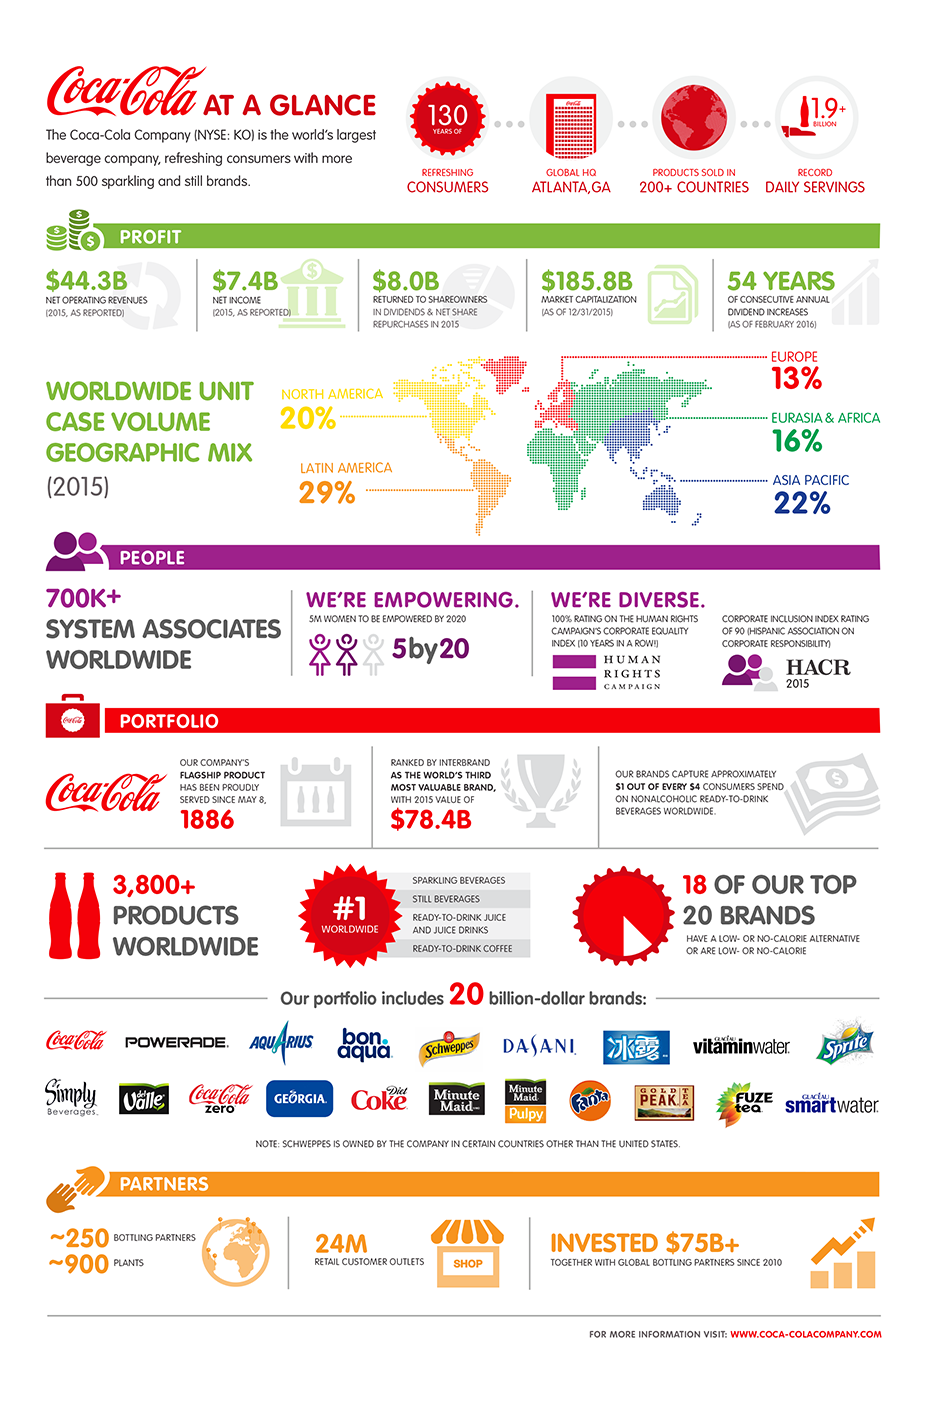 coca-cola-at-a-glance-2016-desktop